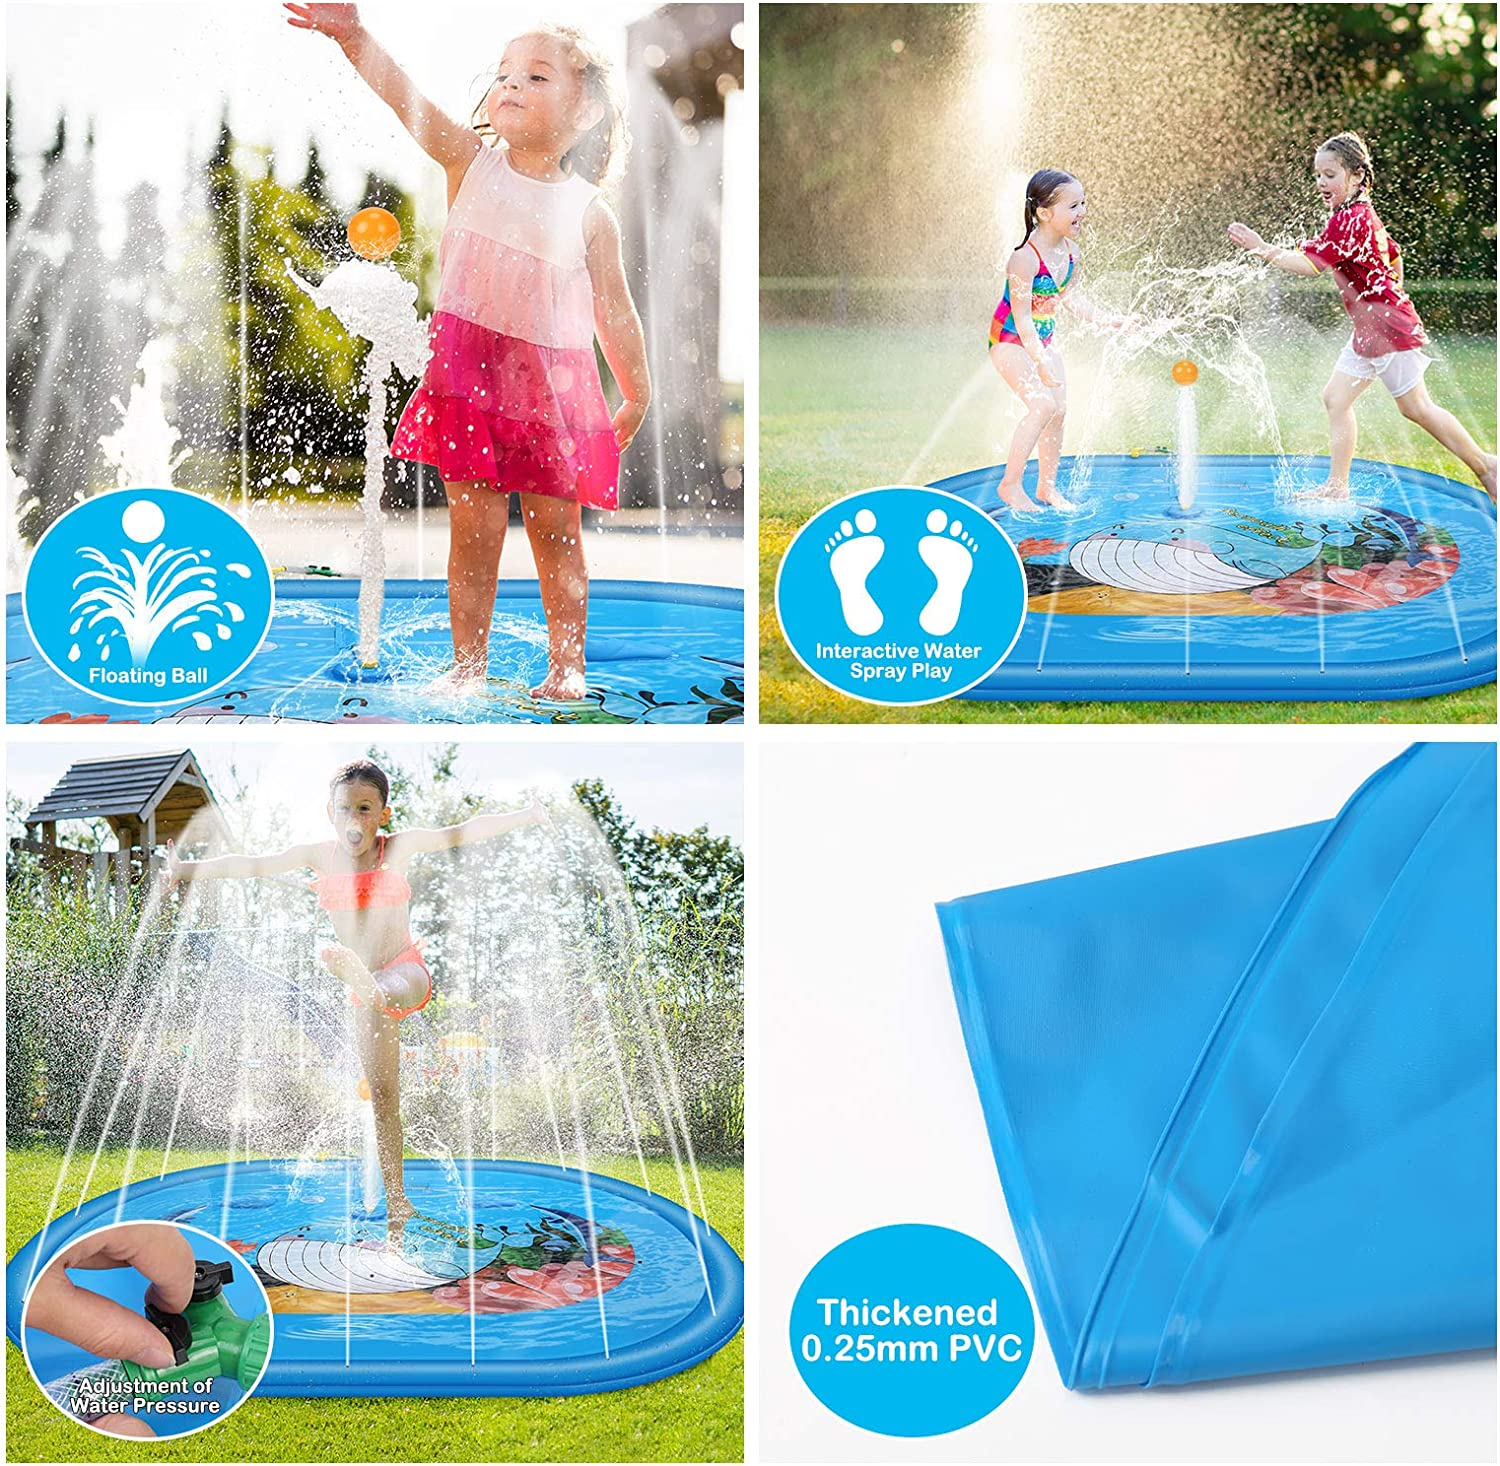 Sprinkler for Kids Adjustable Water Intake Water Play Splash Pad for Kids//Yard Explosion-Proof 74.8 Non-Inflatable Water pad 190cm with Pedal Type Water Guns for Kids and Mini Floating Ball